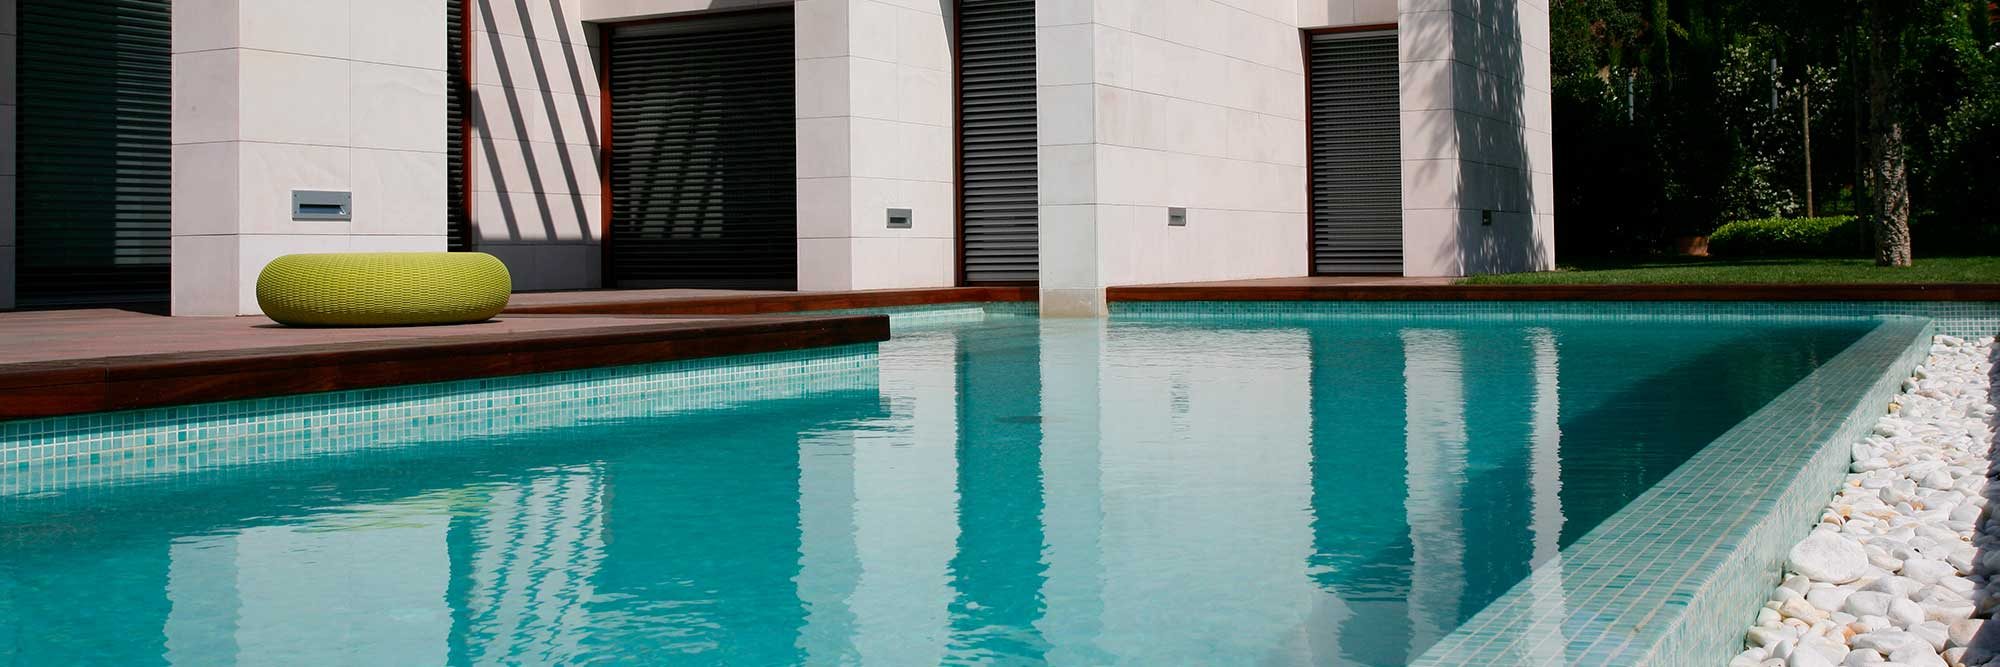 Where to buy swimming pool products? | AstralPool